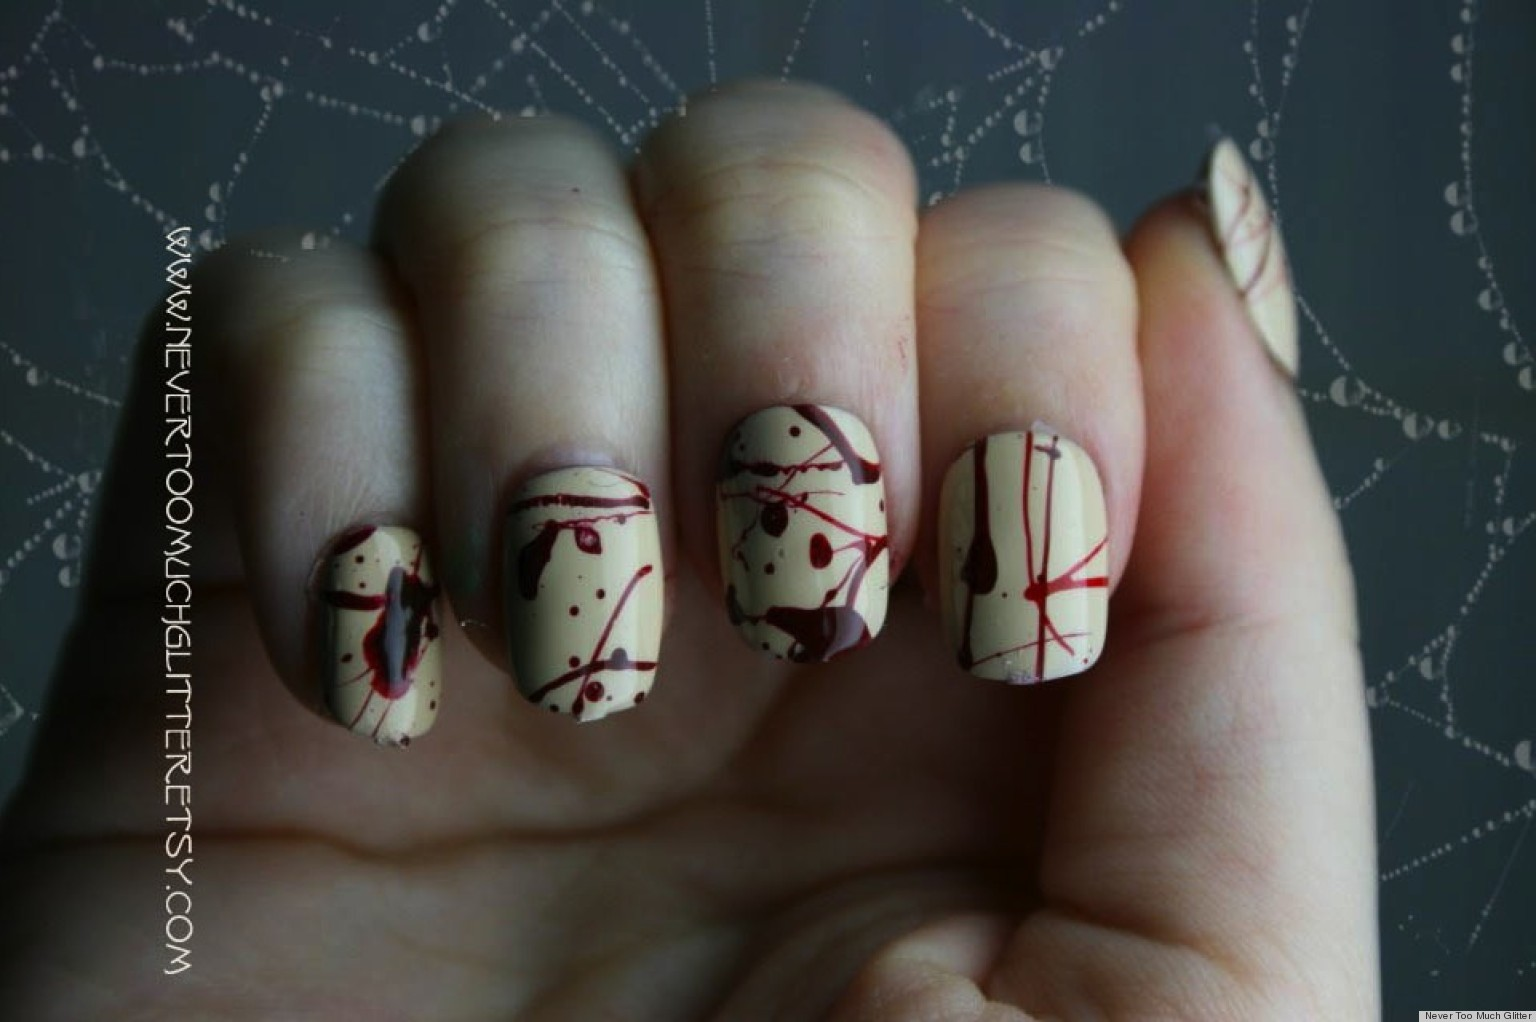 DIY Nail Art: Blood Splatter-Inspired Manicure (PHOTO) | HuffPost